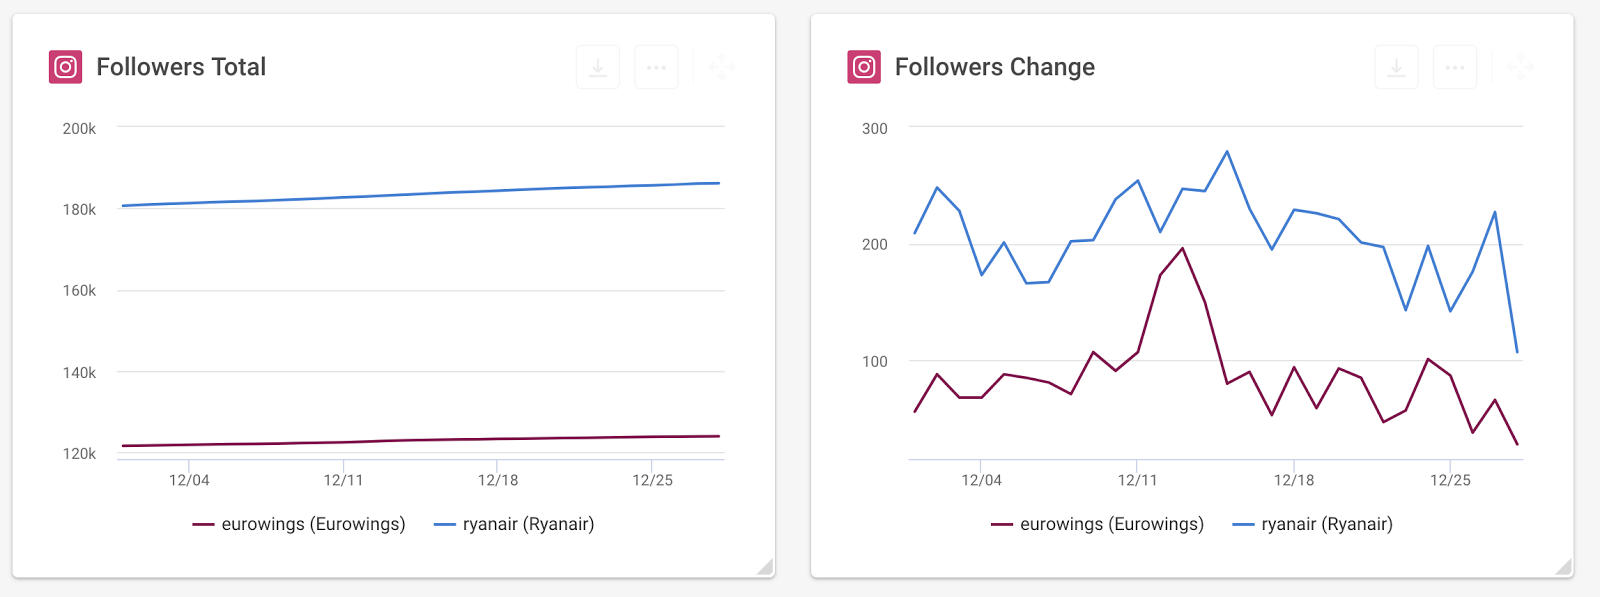 Followers Change Instagram